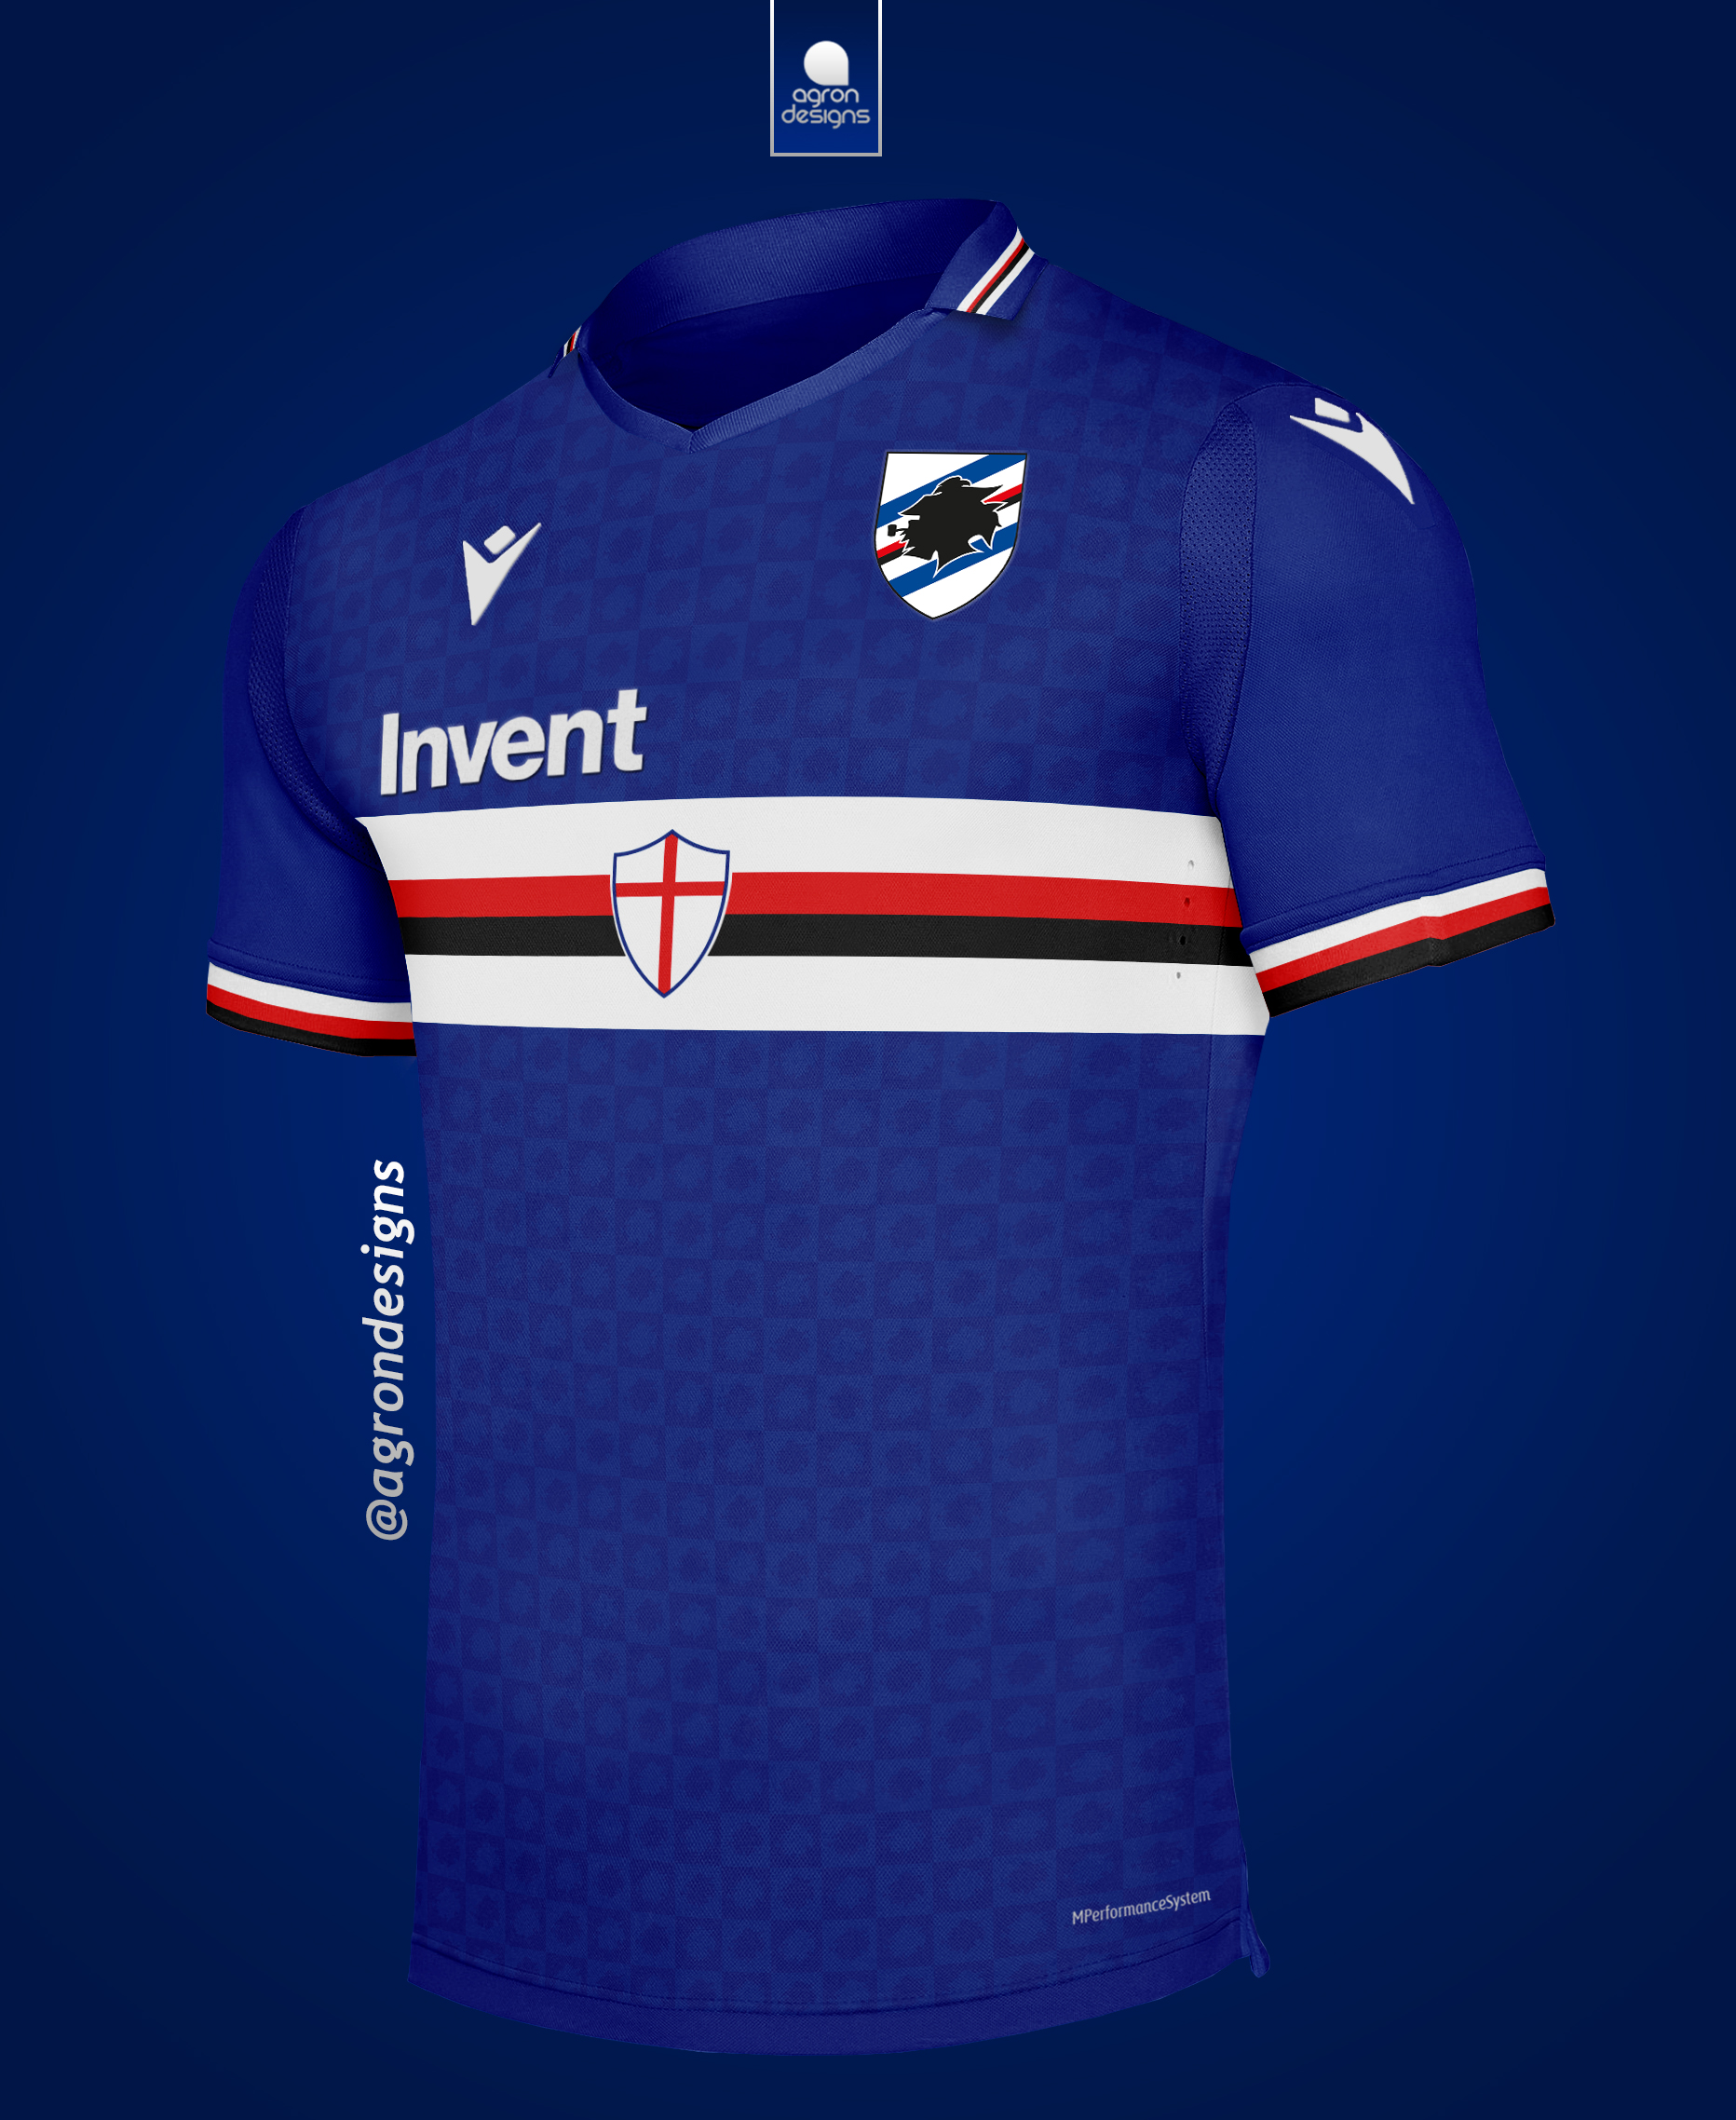 Macron Sampdoria 2020 21 Home Kit Concept